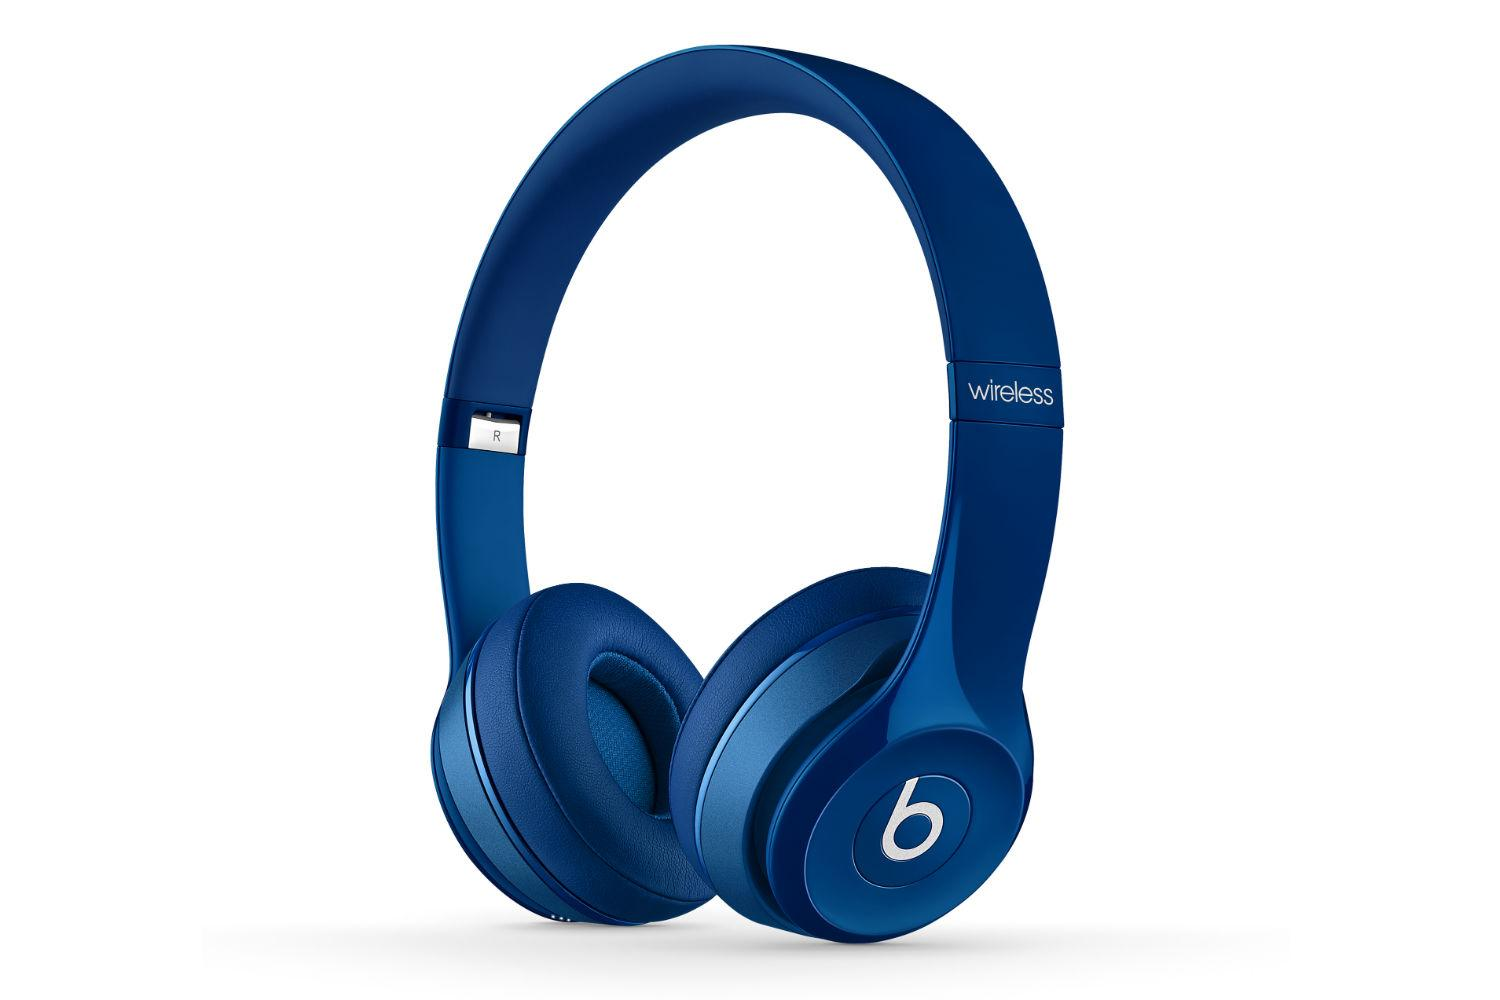 apple s back to school promo offers beats headphones apple repeats back to school beats promotion solo wireless blue quarter